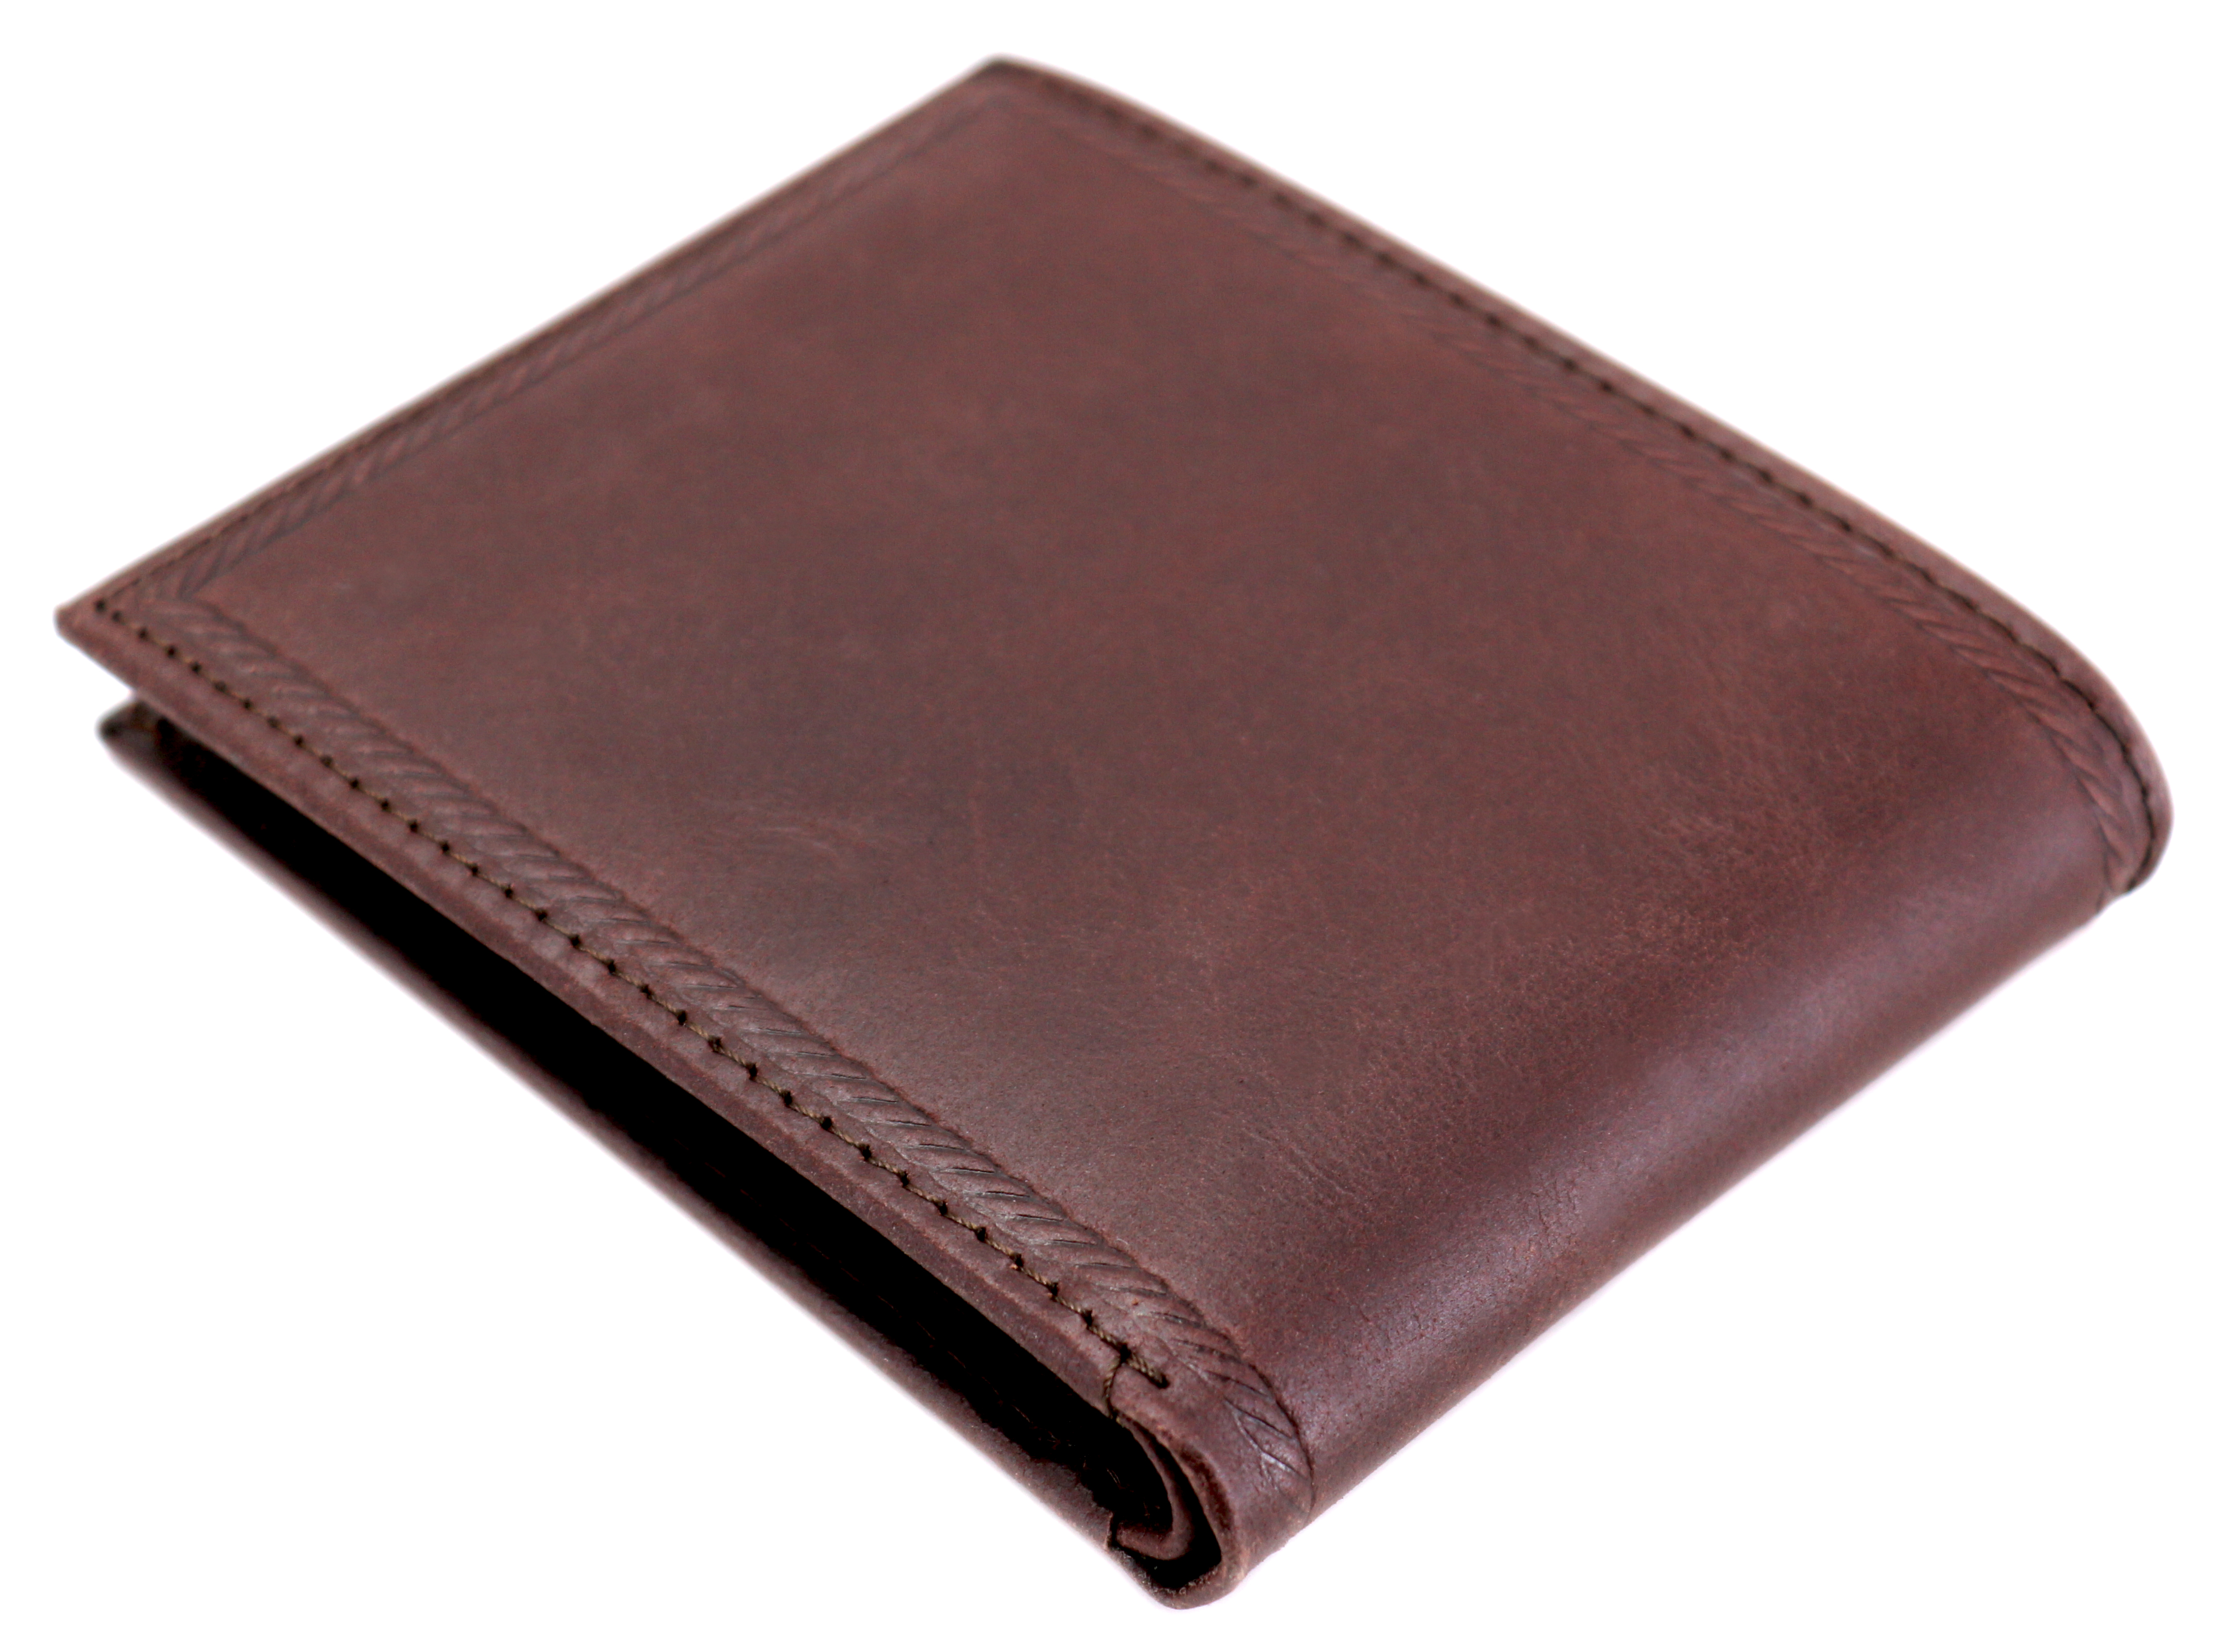 Nautica-Men-039-s-Genuine-Vintage-Leather-Credit-Card-ID-Billfold-Passcase-Wallet thumbnail 13